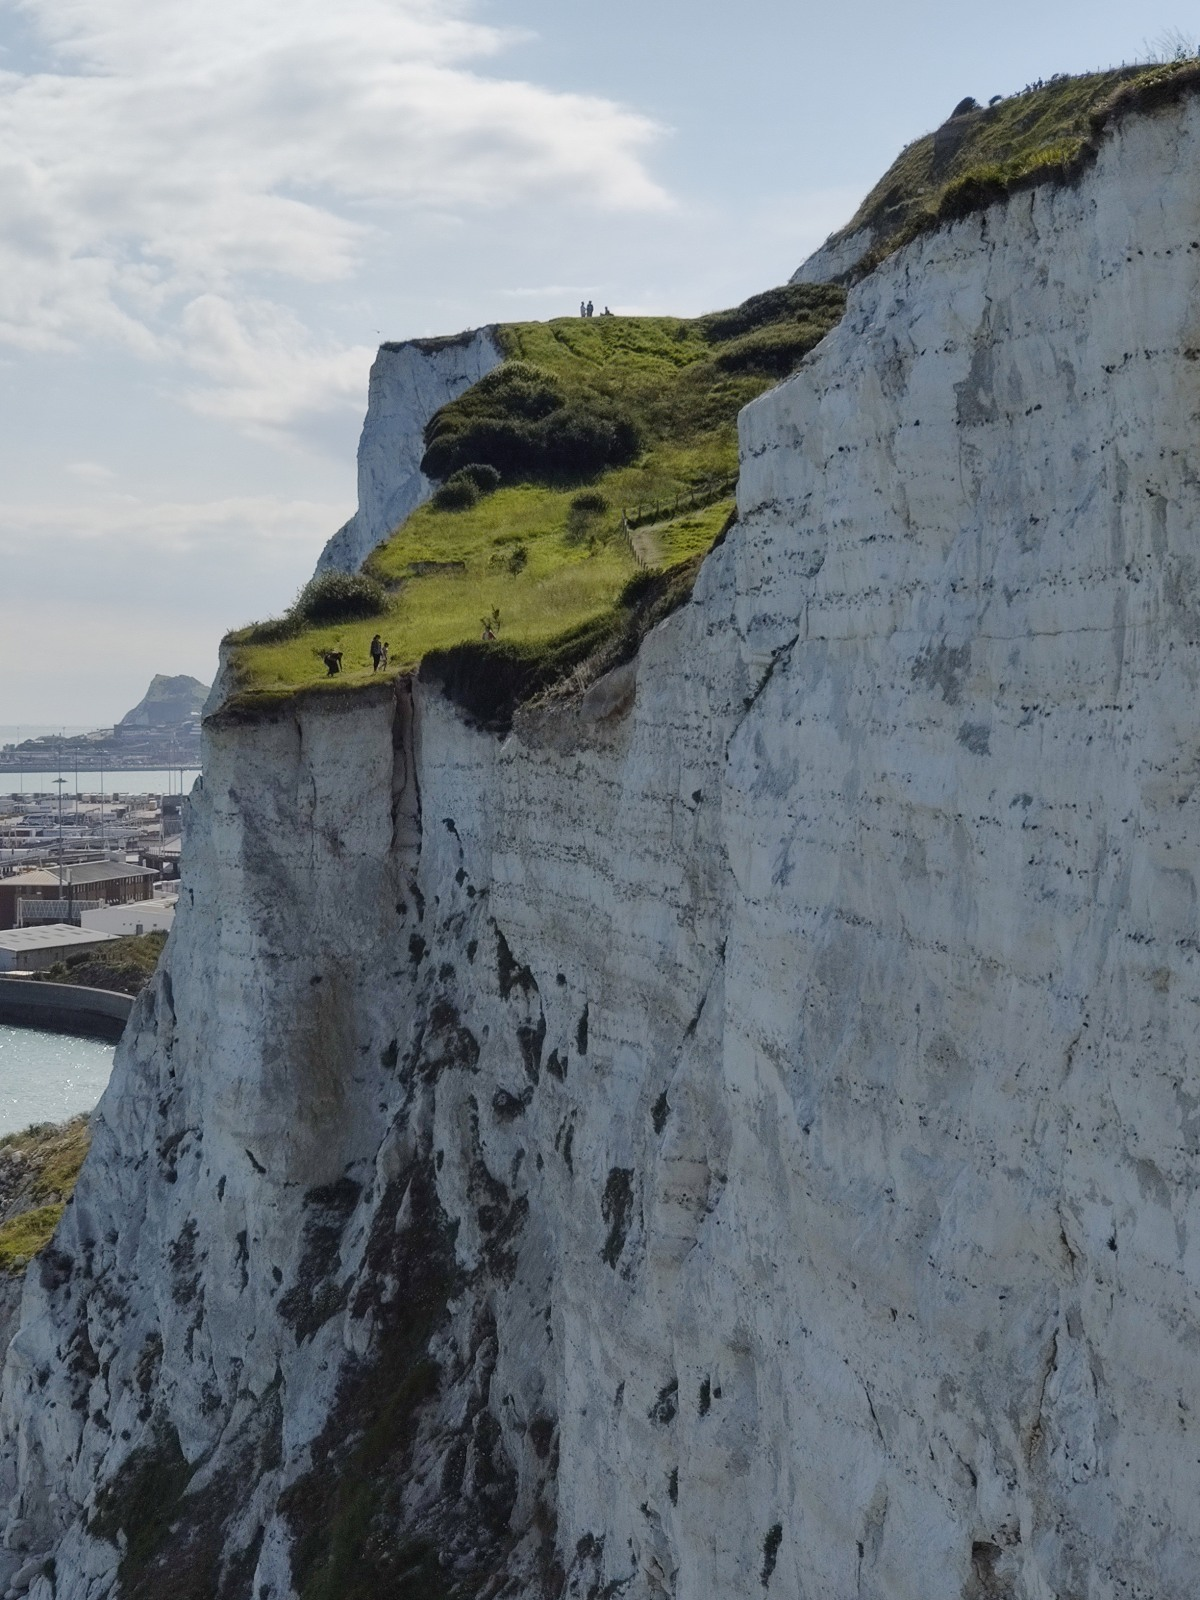 This cliffs are absolutely massive